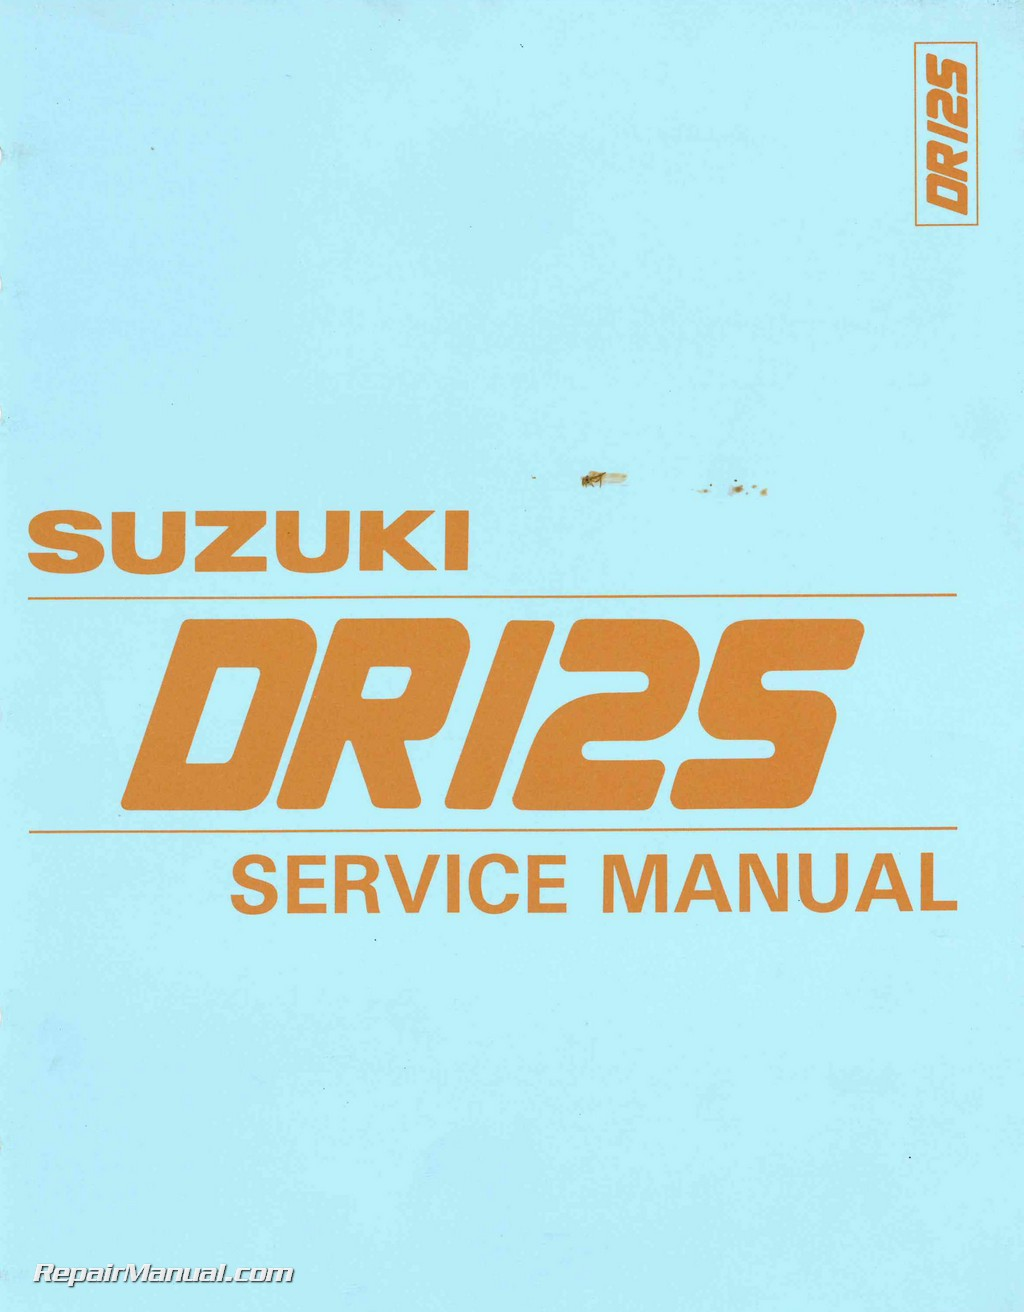 1986 1987 1988 suzuki dr125 sp125 motorcycle service manual rh repairmanual com suzuki dr 125 service manual free download Wheelie Suzuki DR125